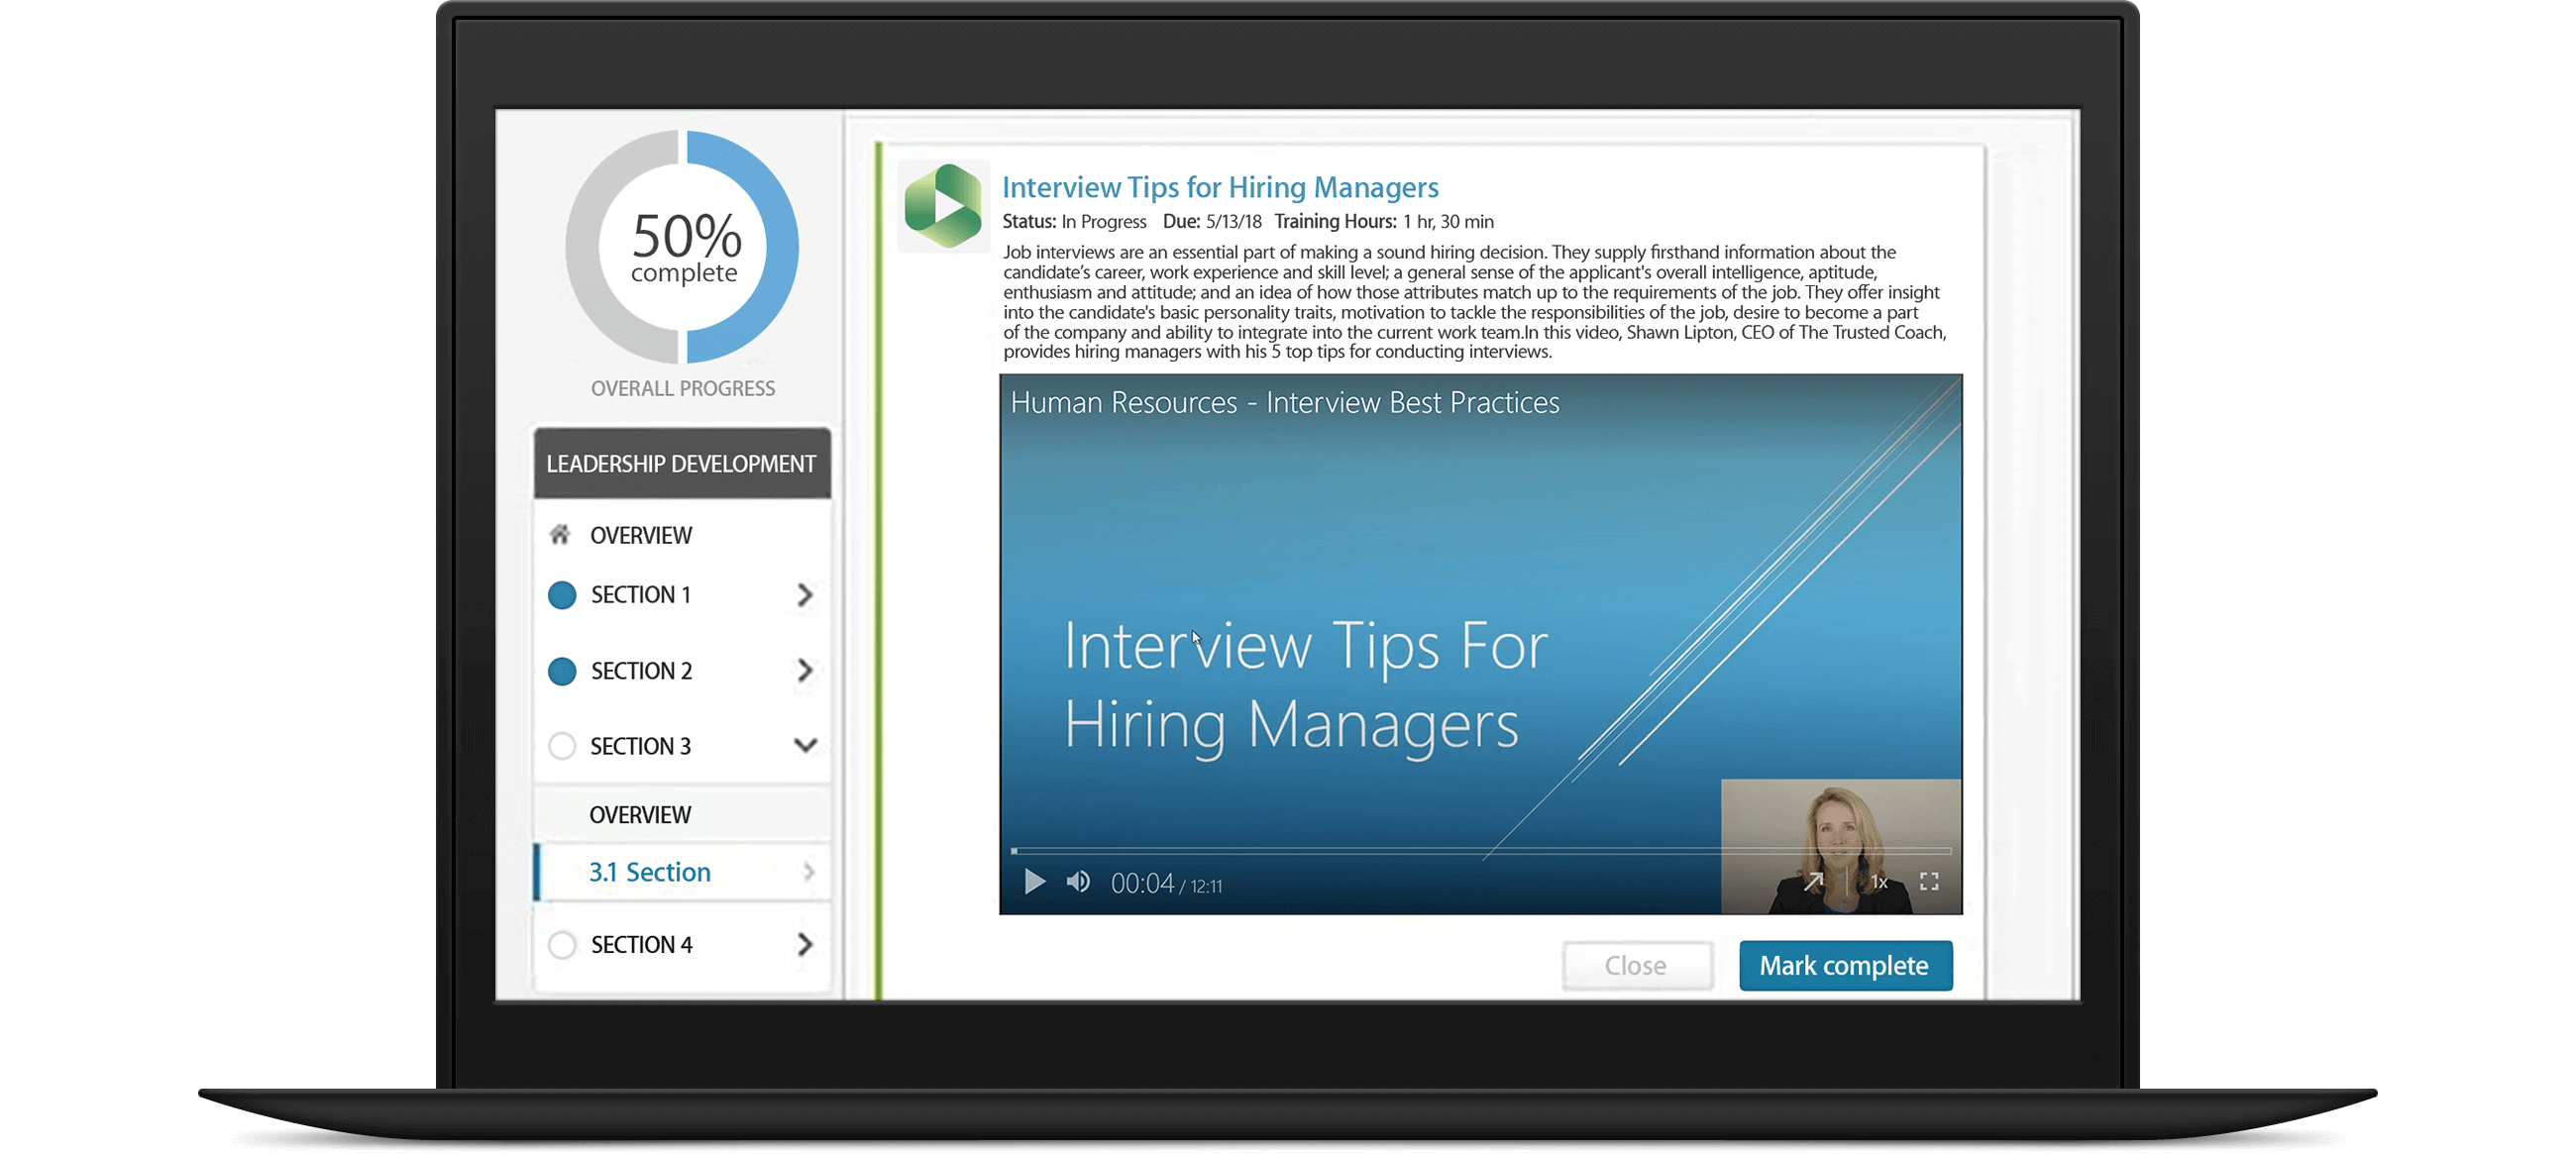 Panopto's Cornerstone integration makes finding training videos easy in your LMS